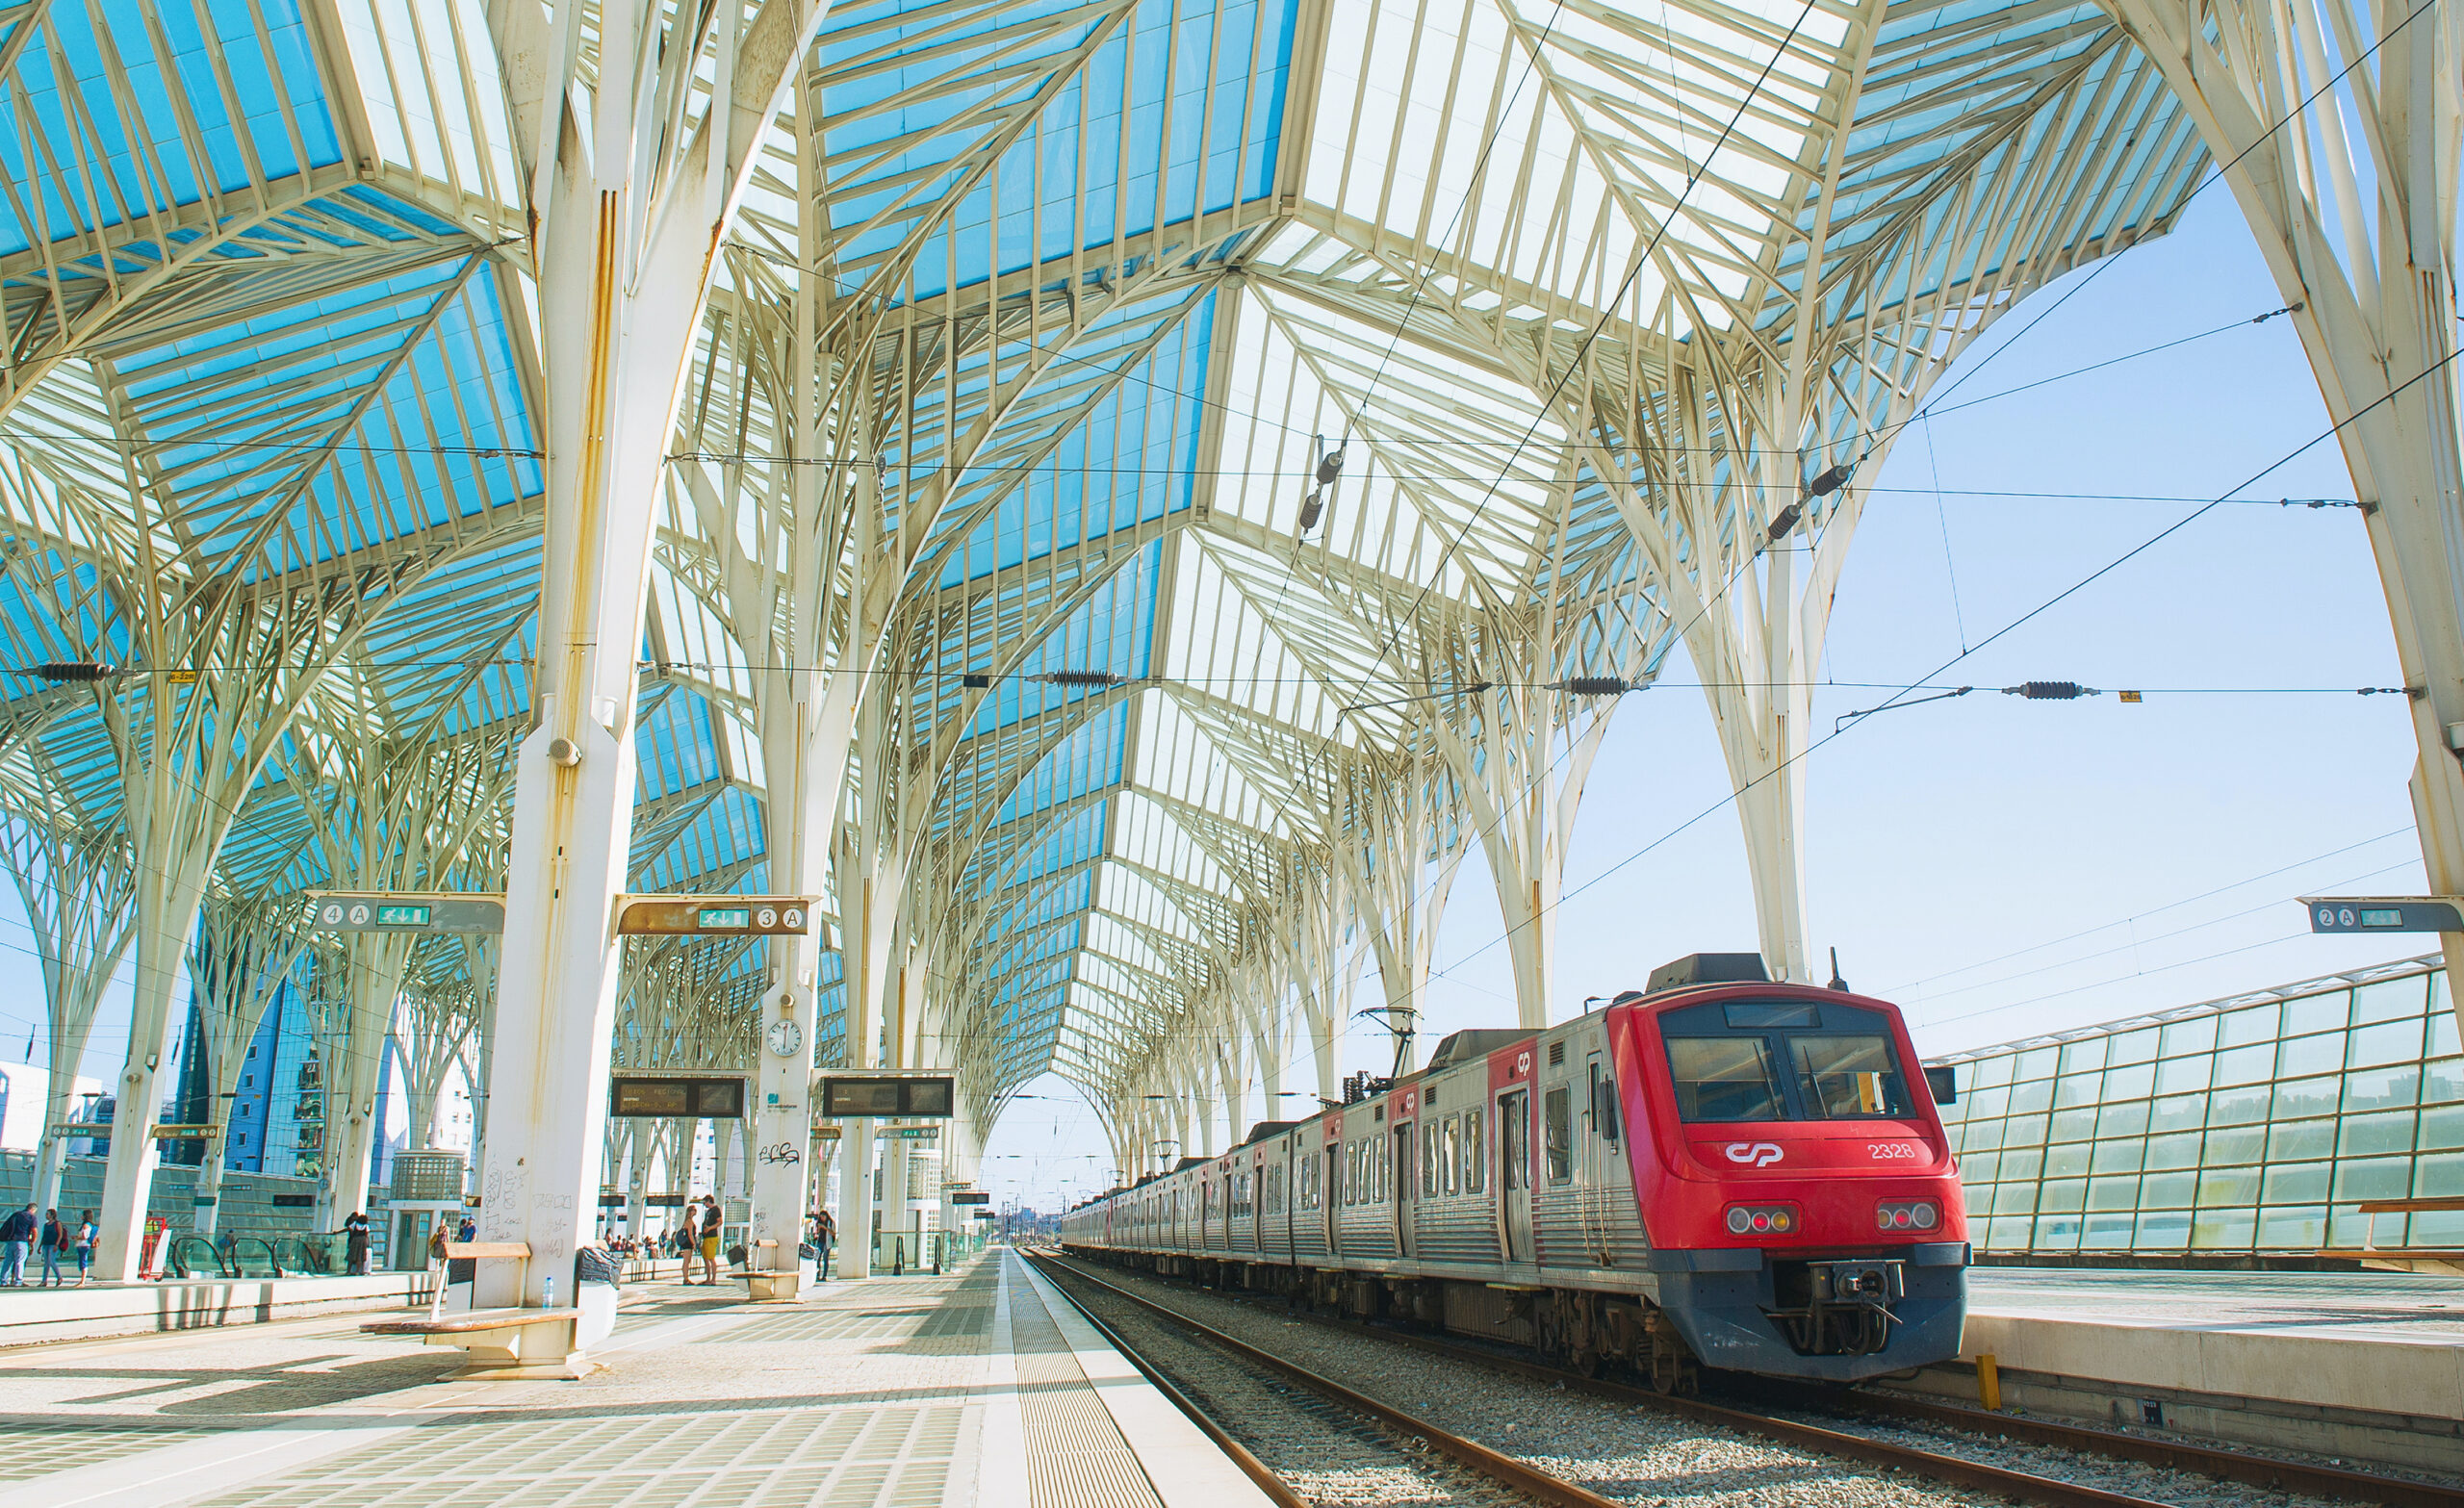 Train station in Portugal.